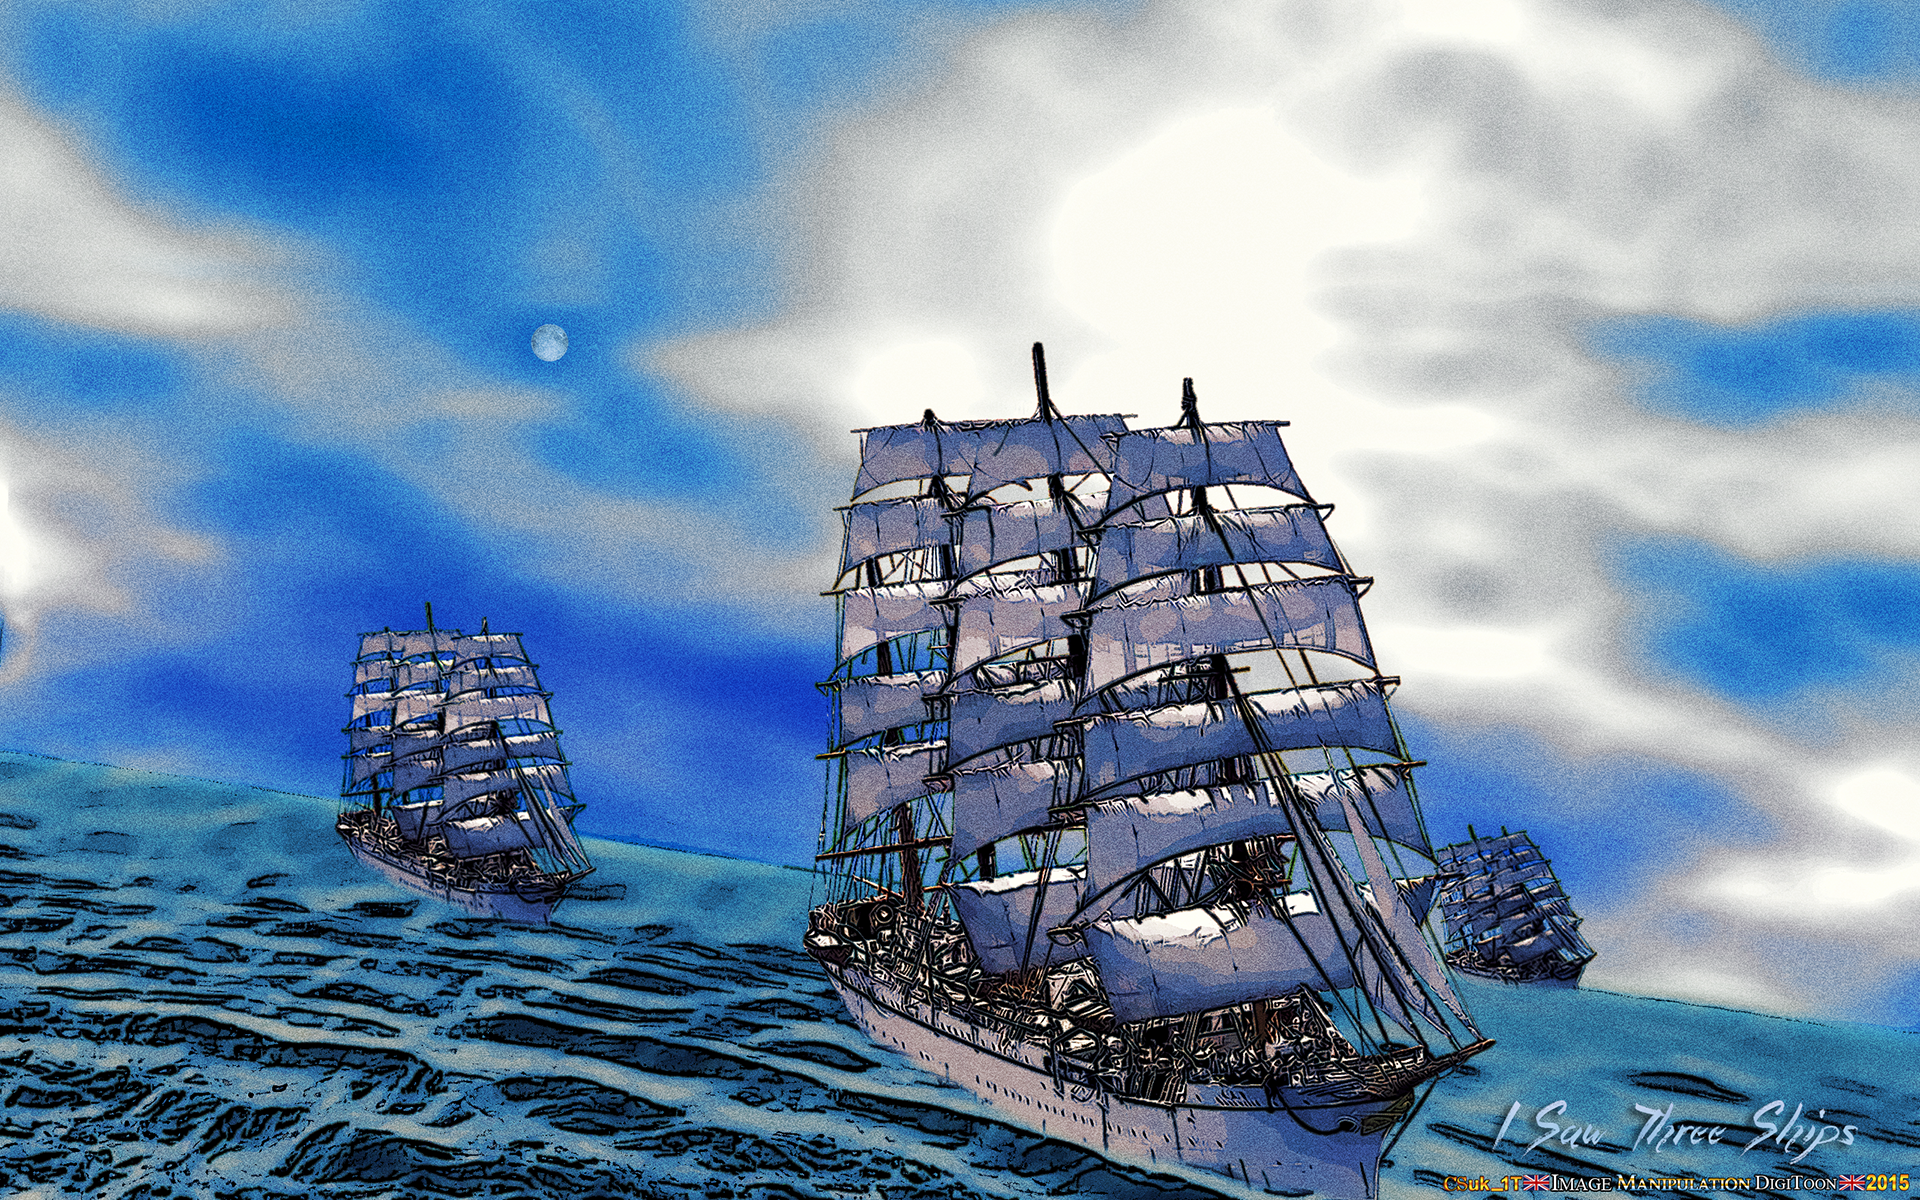 I SAW THREE SHIPS (Come sailing in) by CSuk-1T on DeviantArt